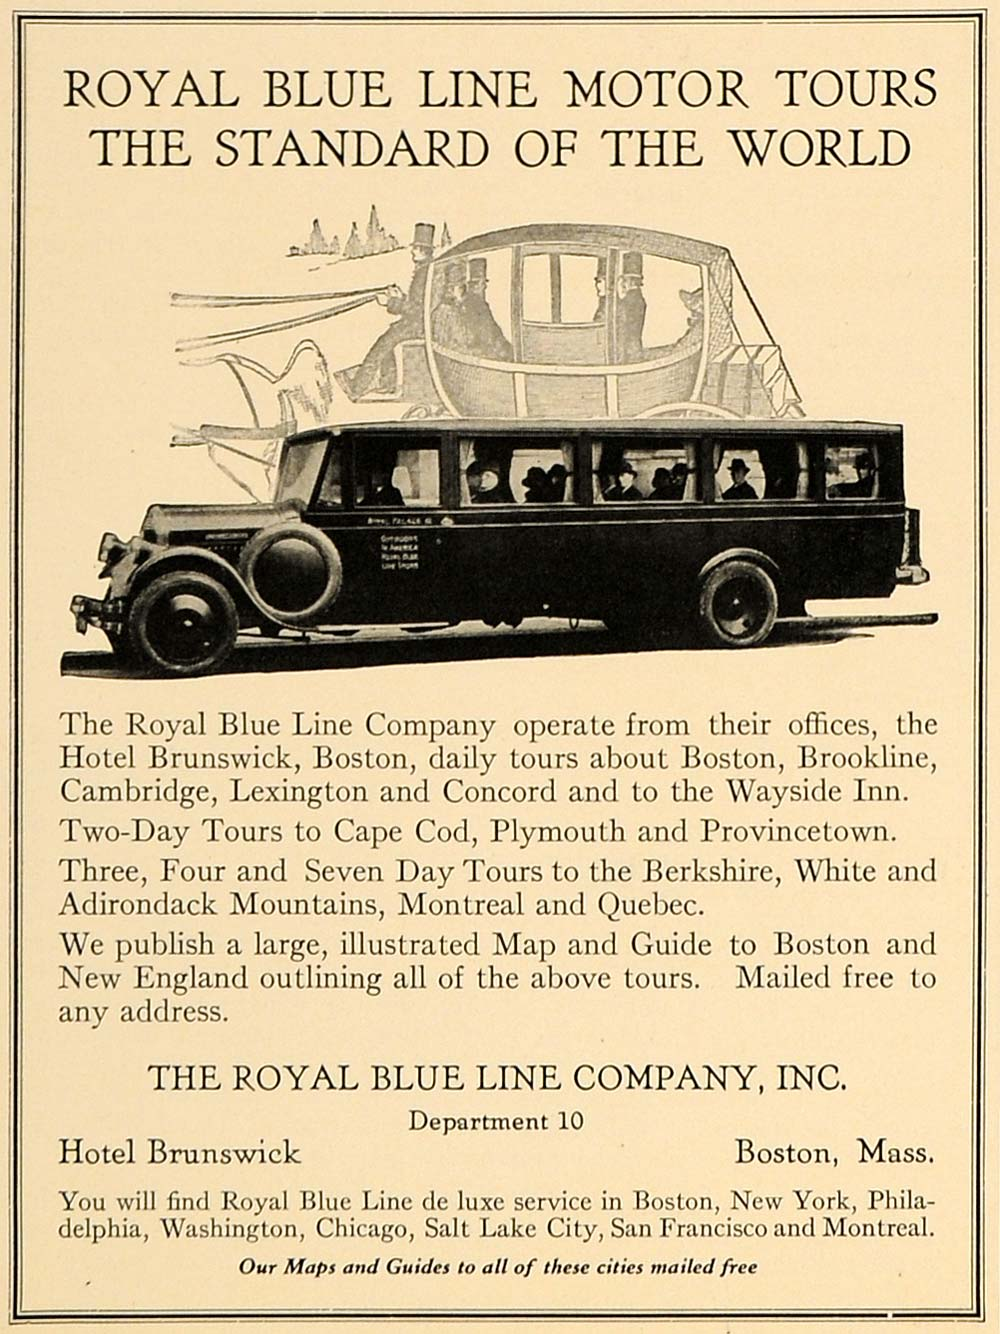 1926 Ad Royal Blue Line Motor Tours Hotel Brunswick - ORIGINAL ADVERTISING GHB1